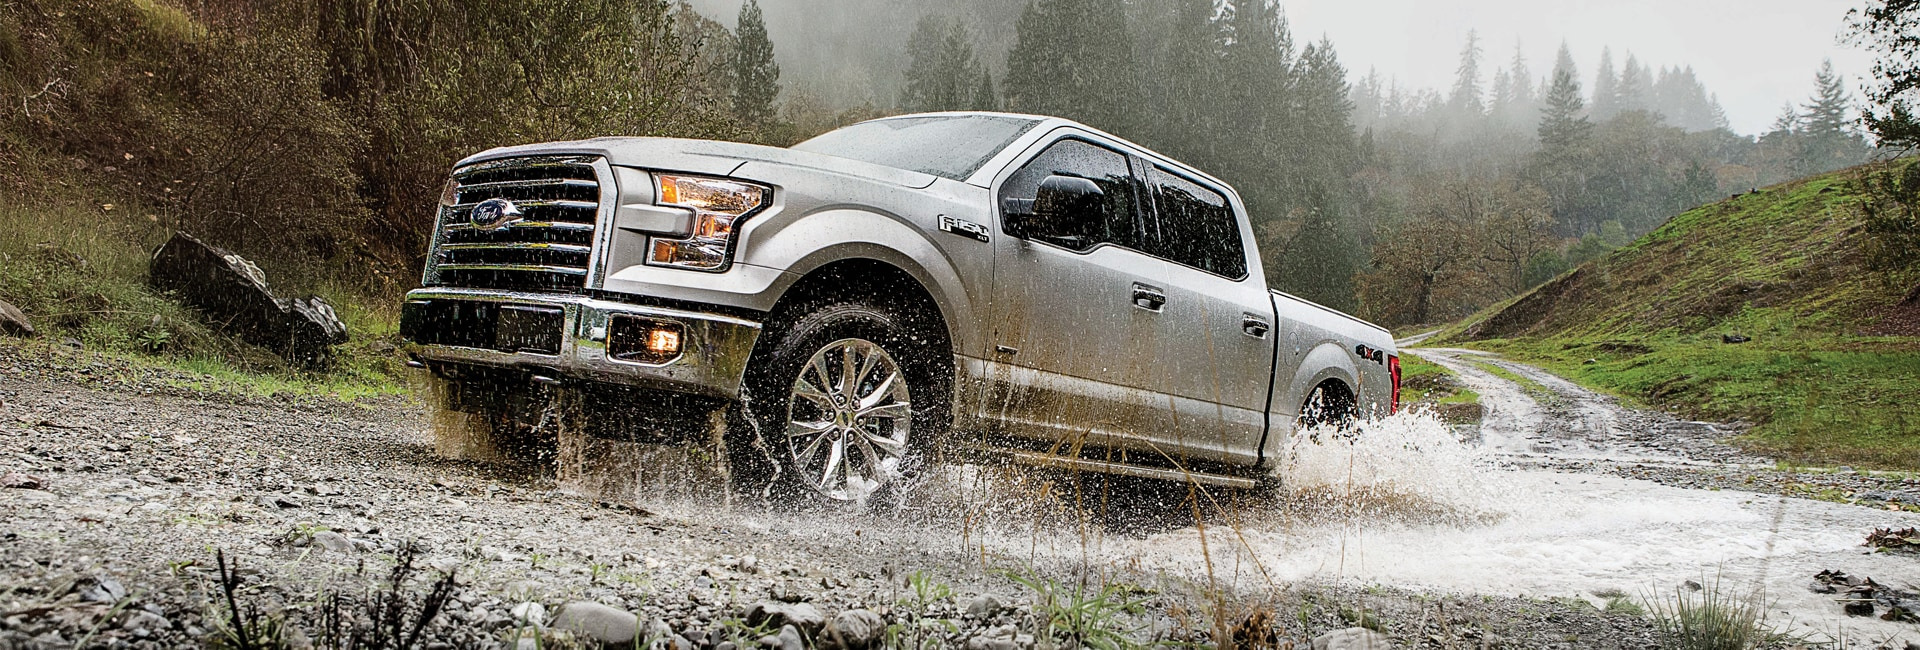 Ford F-150 Exterior Vehicle Features